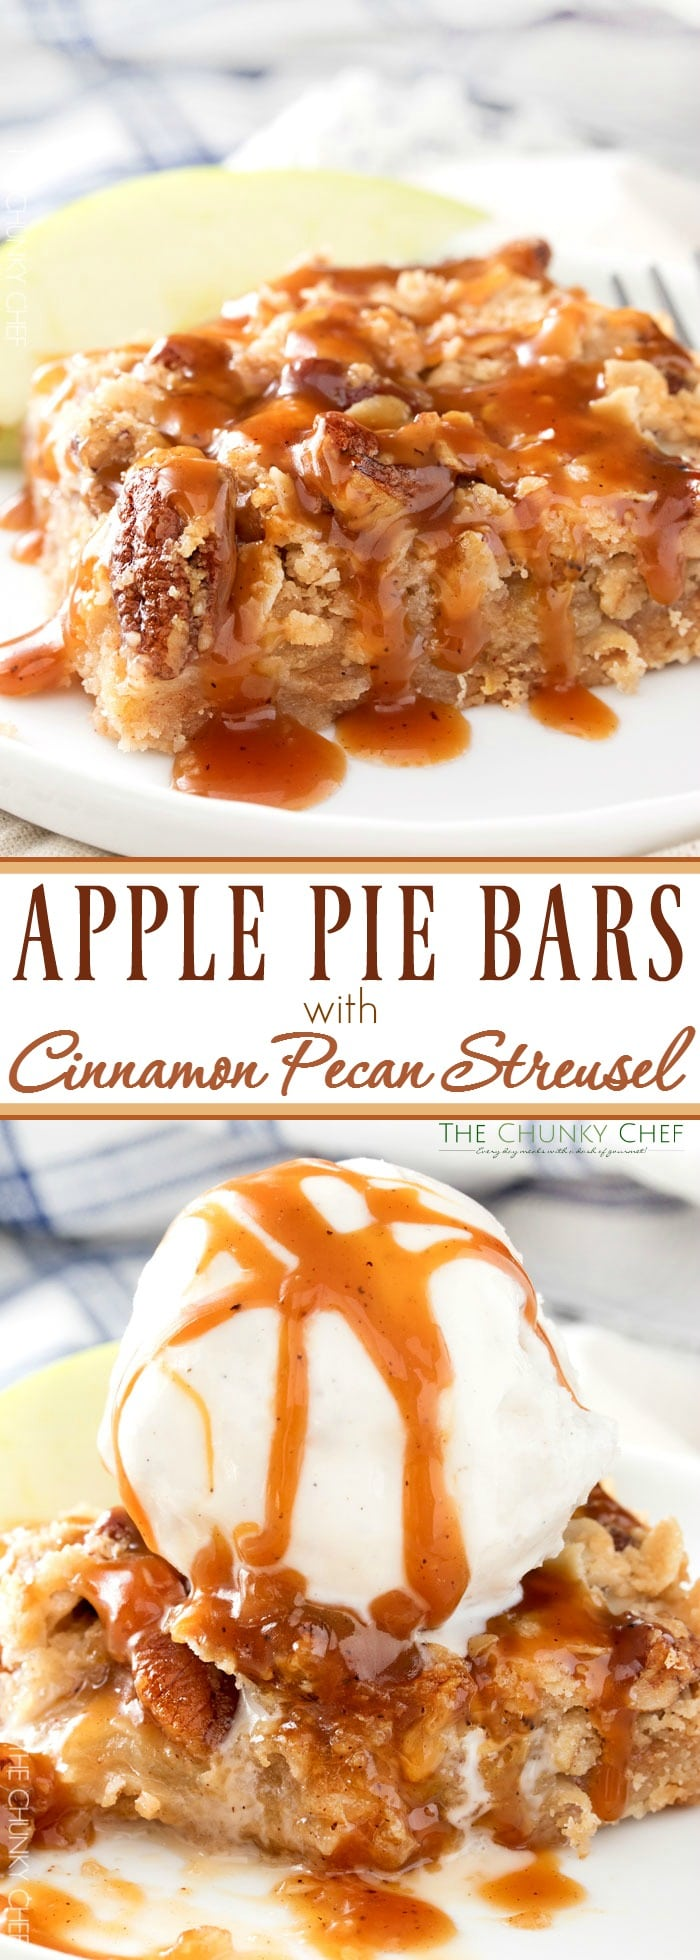 Caramel Apple Pie Bars with Cinnamon Pecan Streusel | All the classic flavors of a Dutch caramel apple pie, in an easy bar dessert! | http://thechunkychef.com